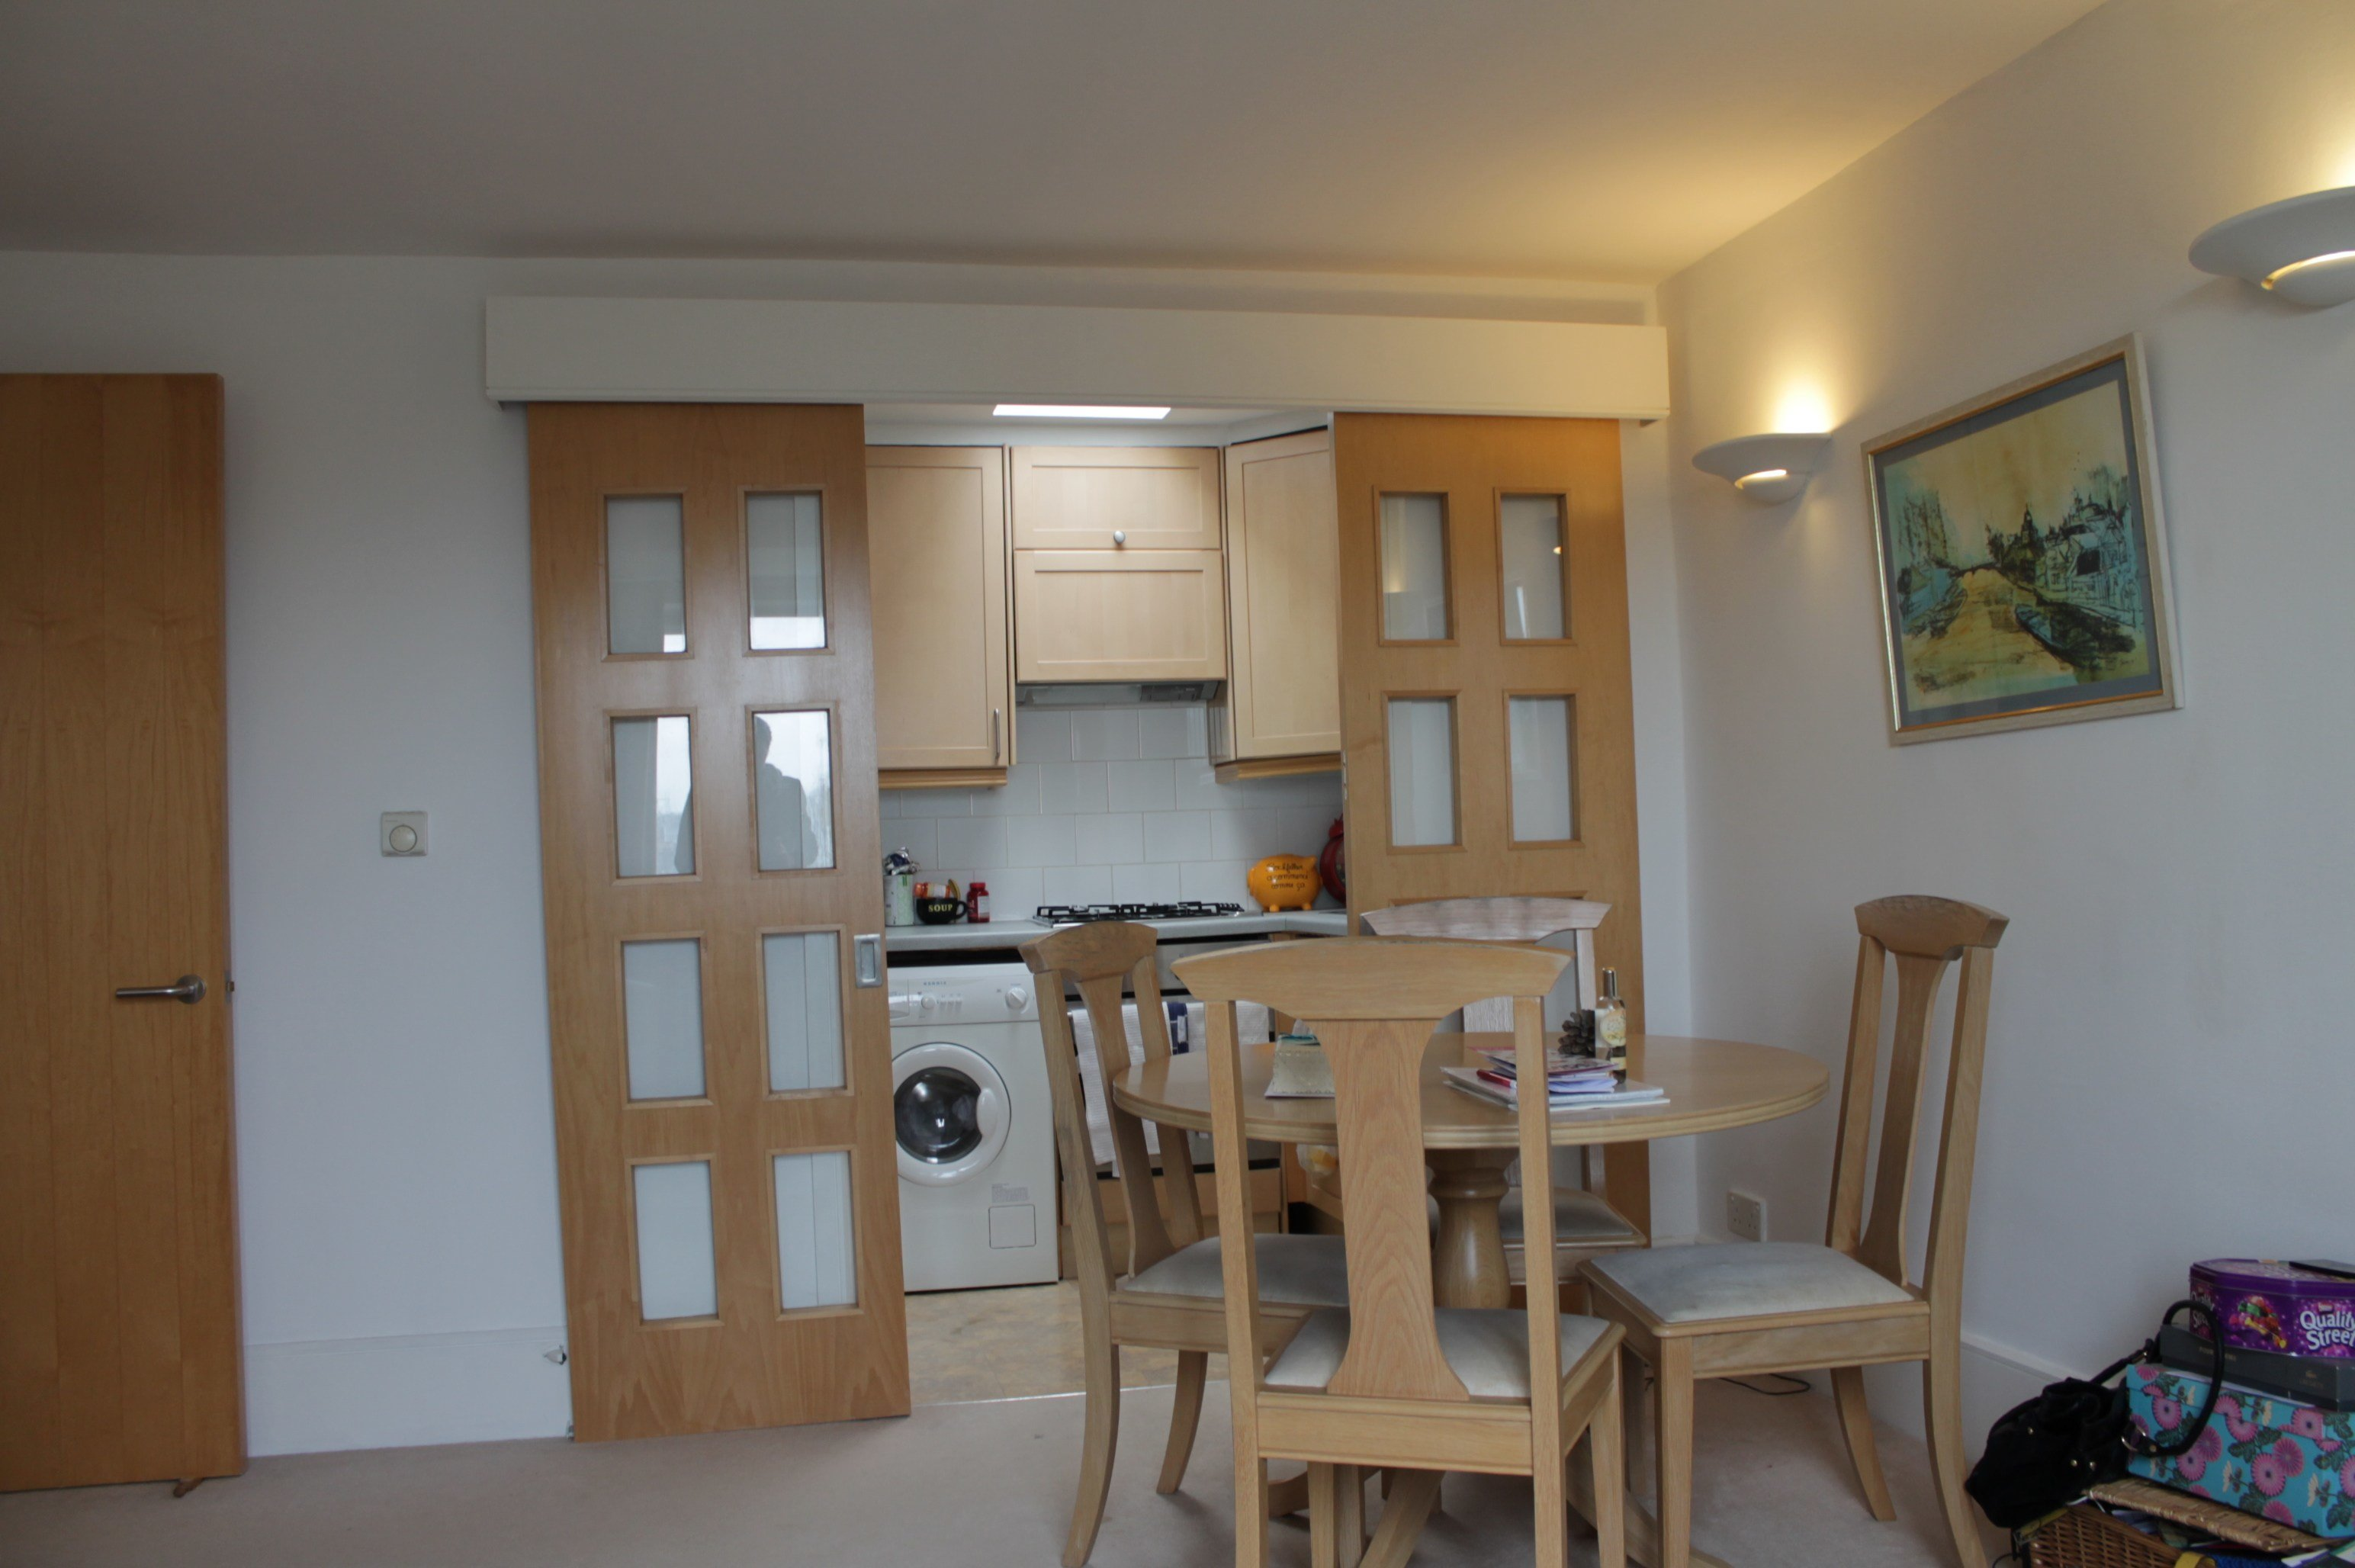 Best 1 Bed Flat To Rent Trebovir Road London Sw5 9Nl With Pictures Original 1024 x 768